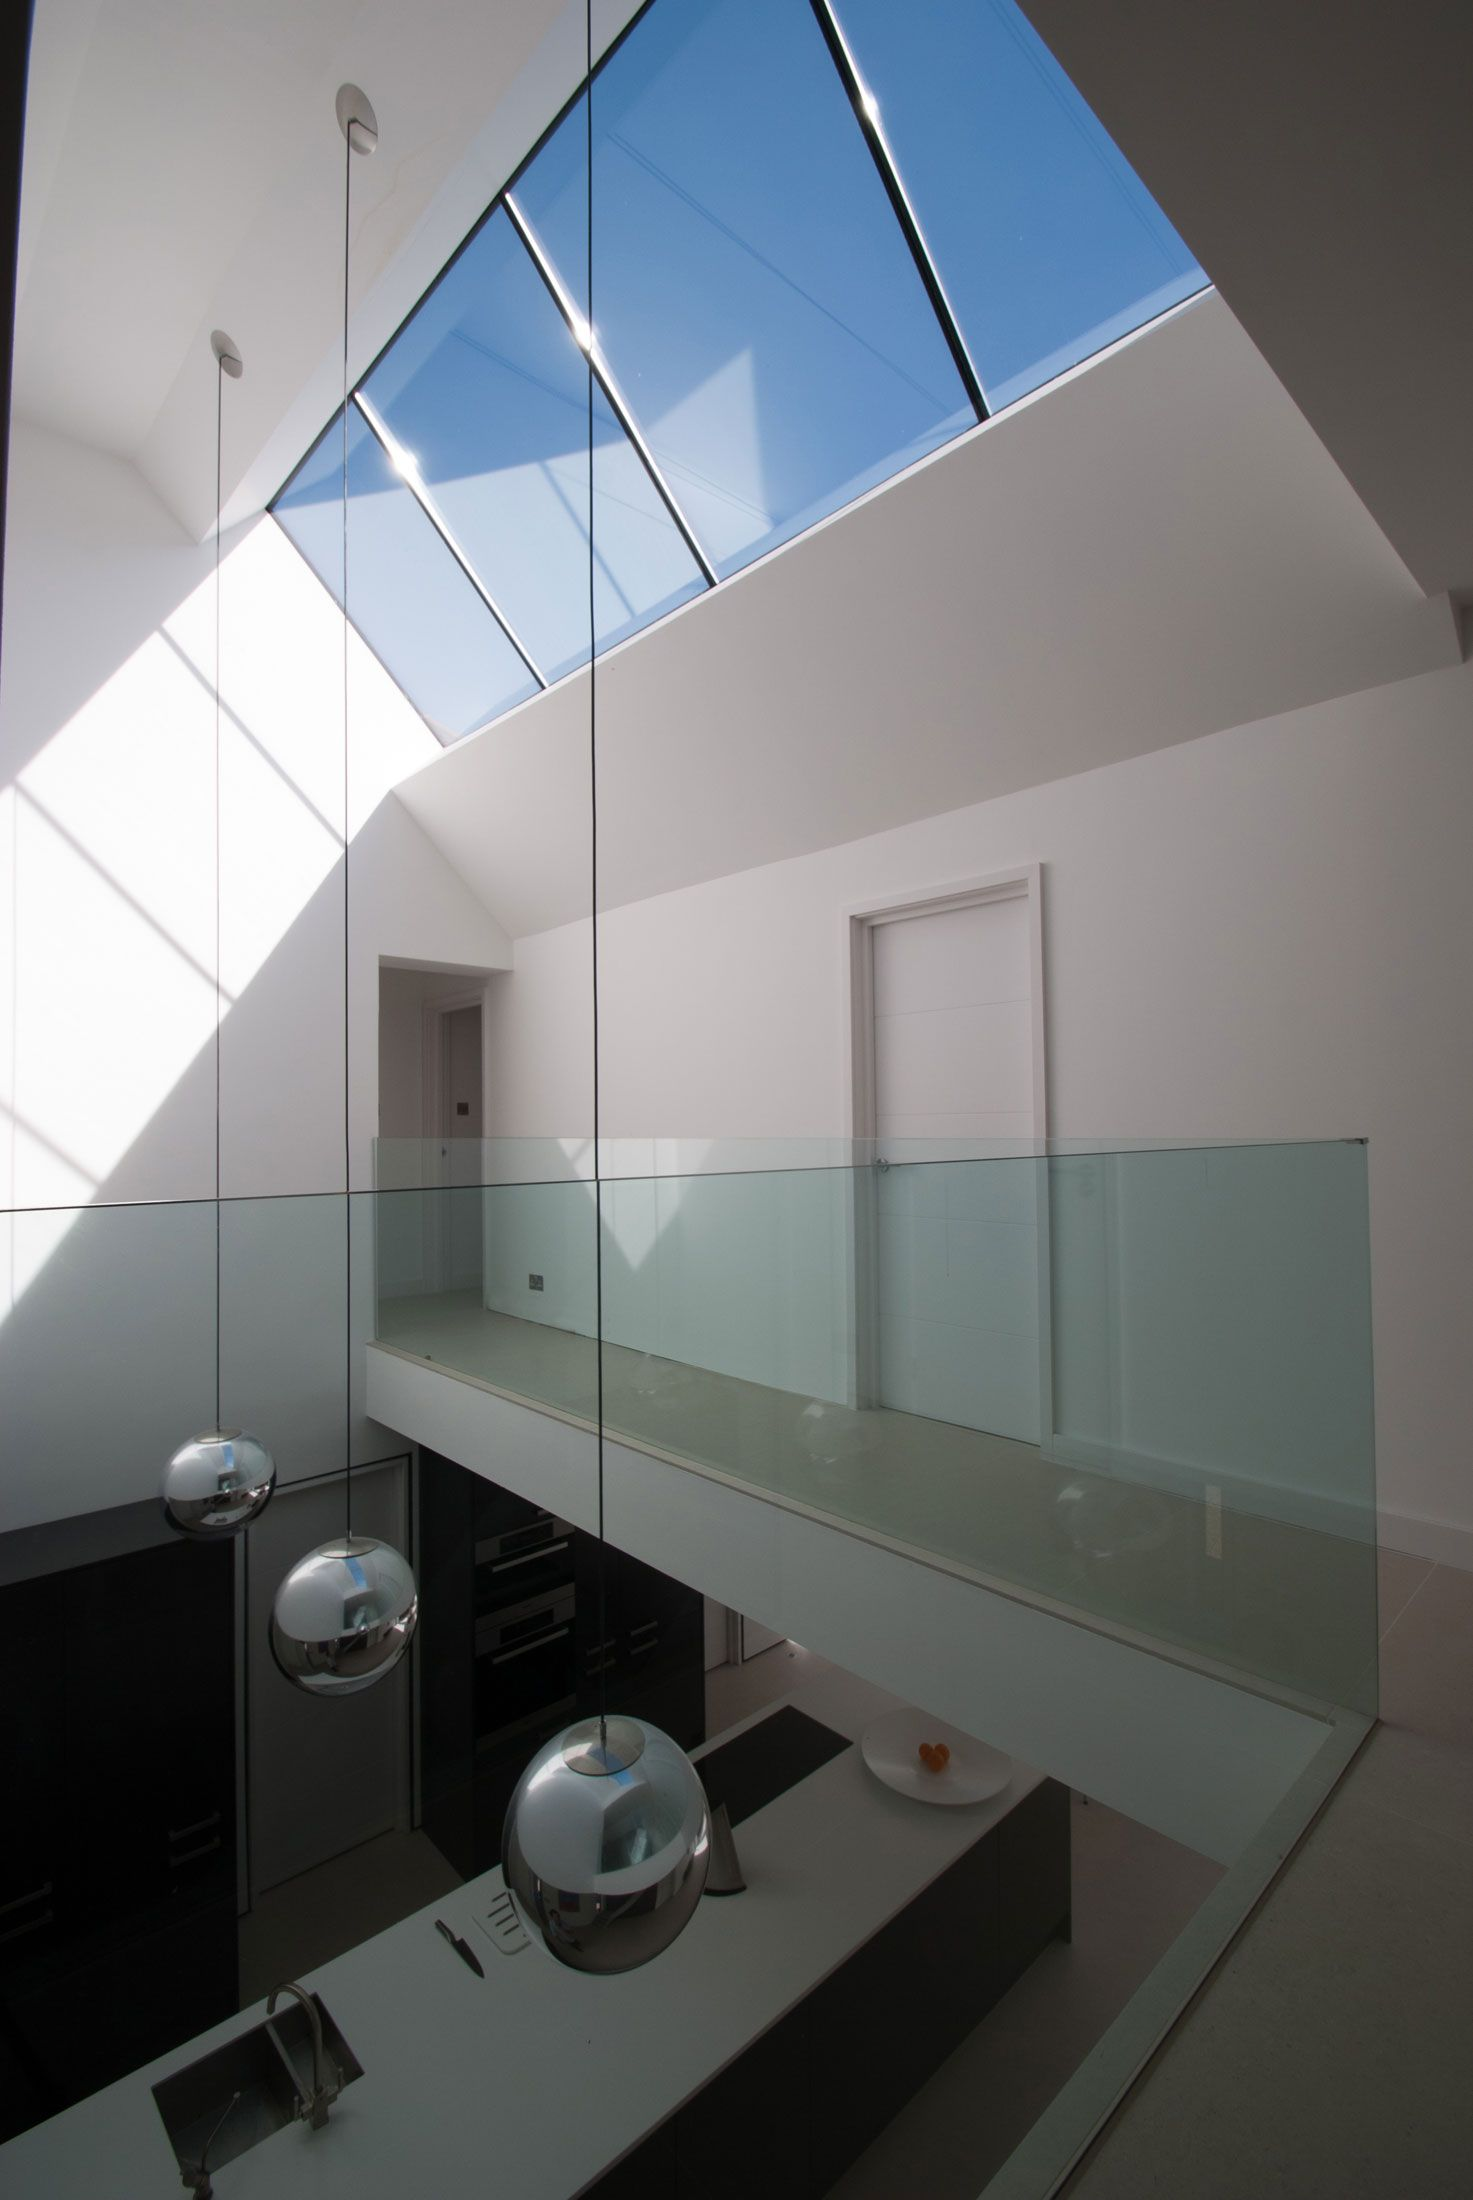 skylight wall - Google Search | Flat | Revit architecture, Design